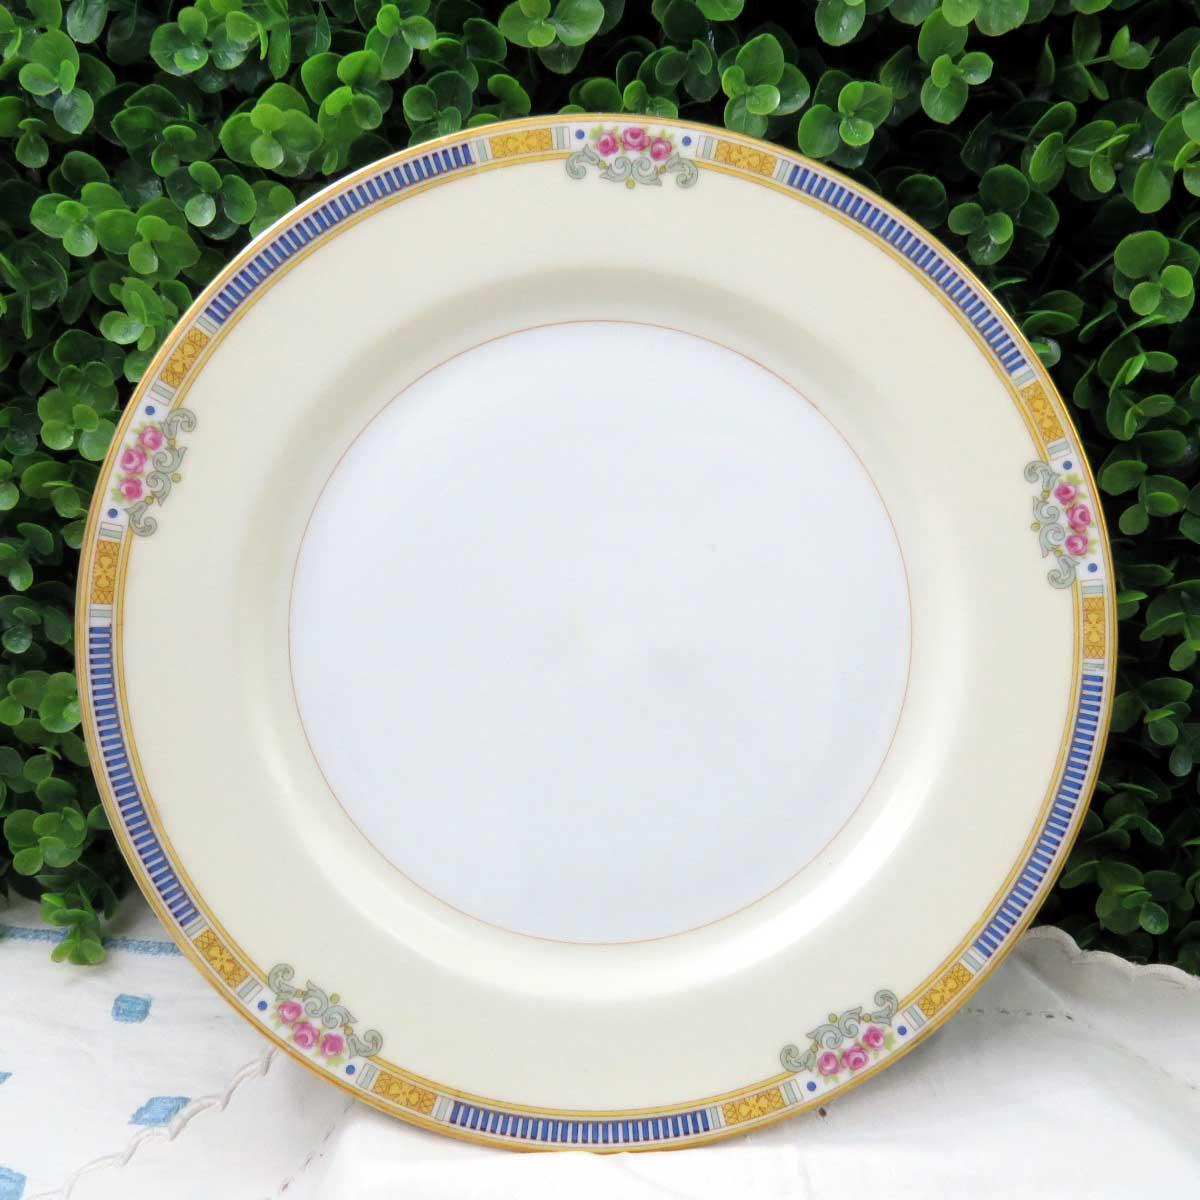 Vintage Mismatched Fine China Dinner Plates - Set of 4 - Image 4 of 11 & Vintage Mismatched Fine China Dinner Plates - Set of 4 | Chairish